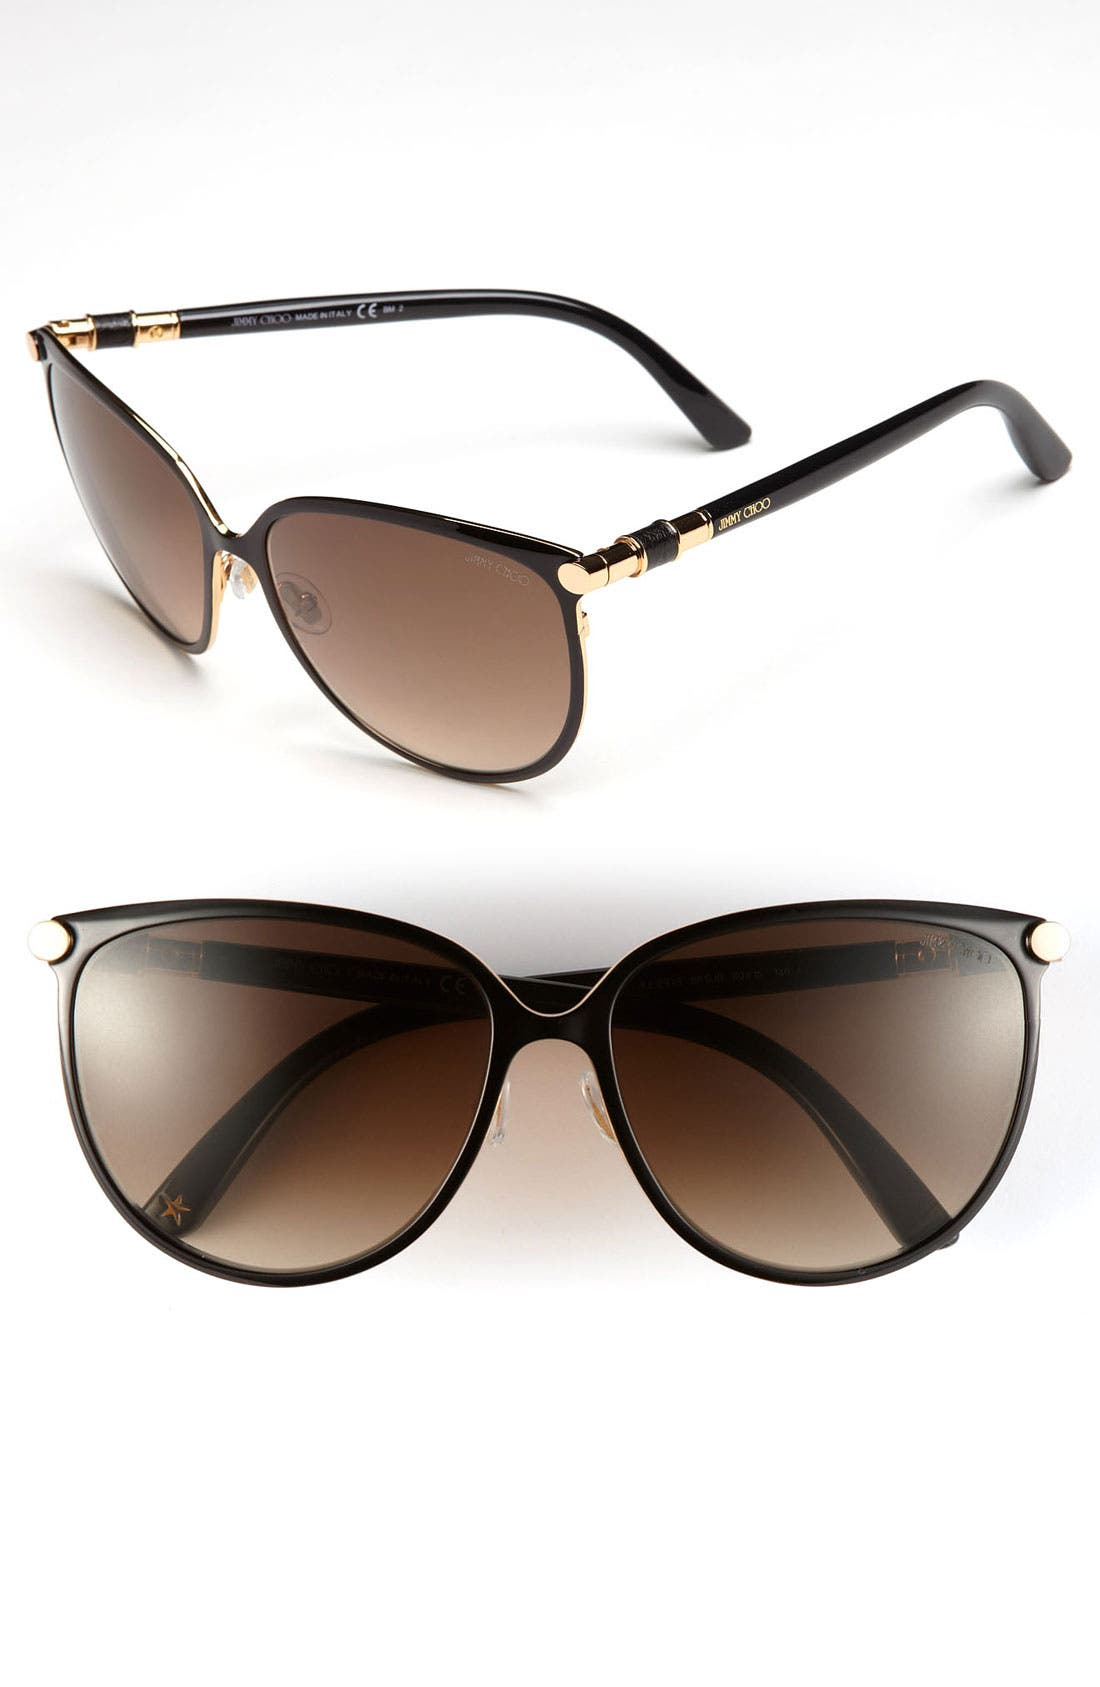 Alternate Image 1 Selected - Jimmy Choo 'Juliet' 60mm Cat's Eye Sunglasses